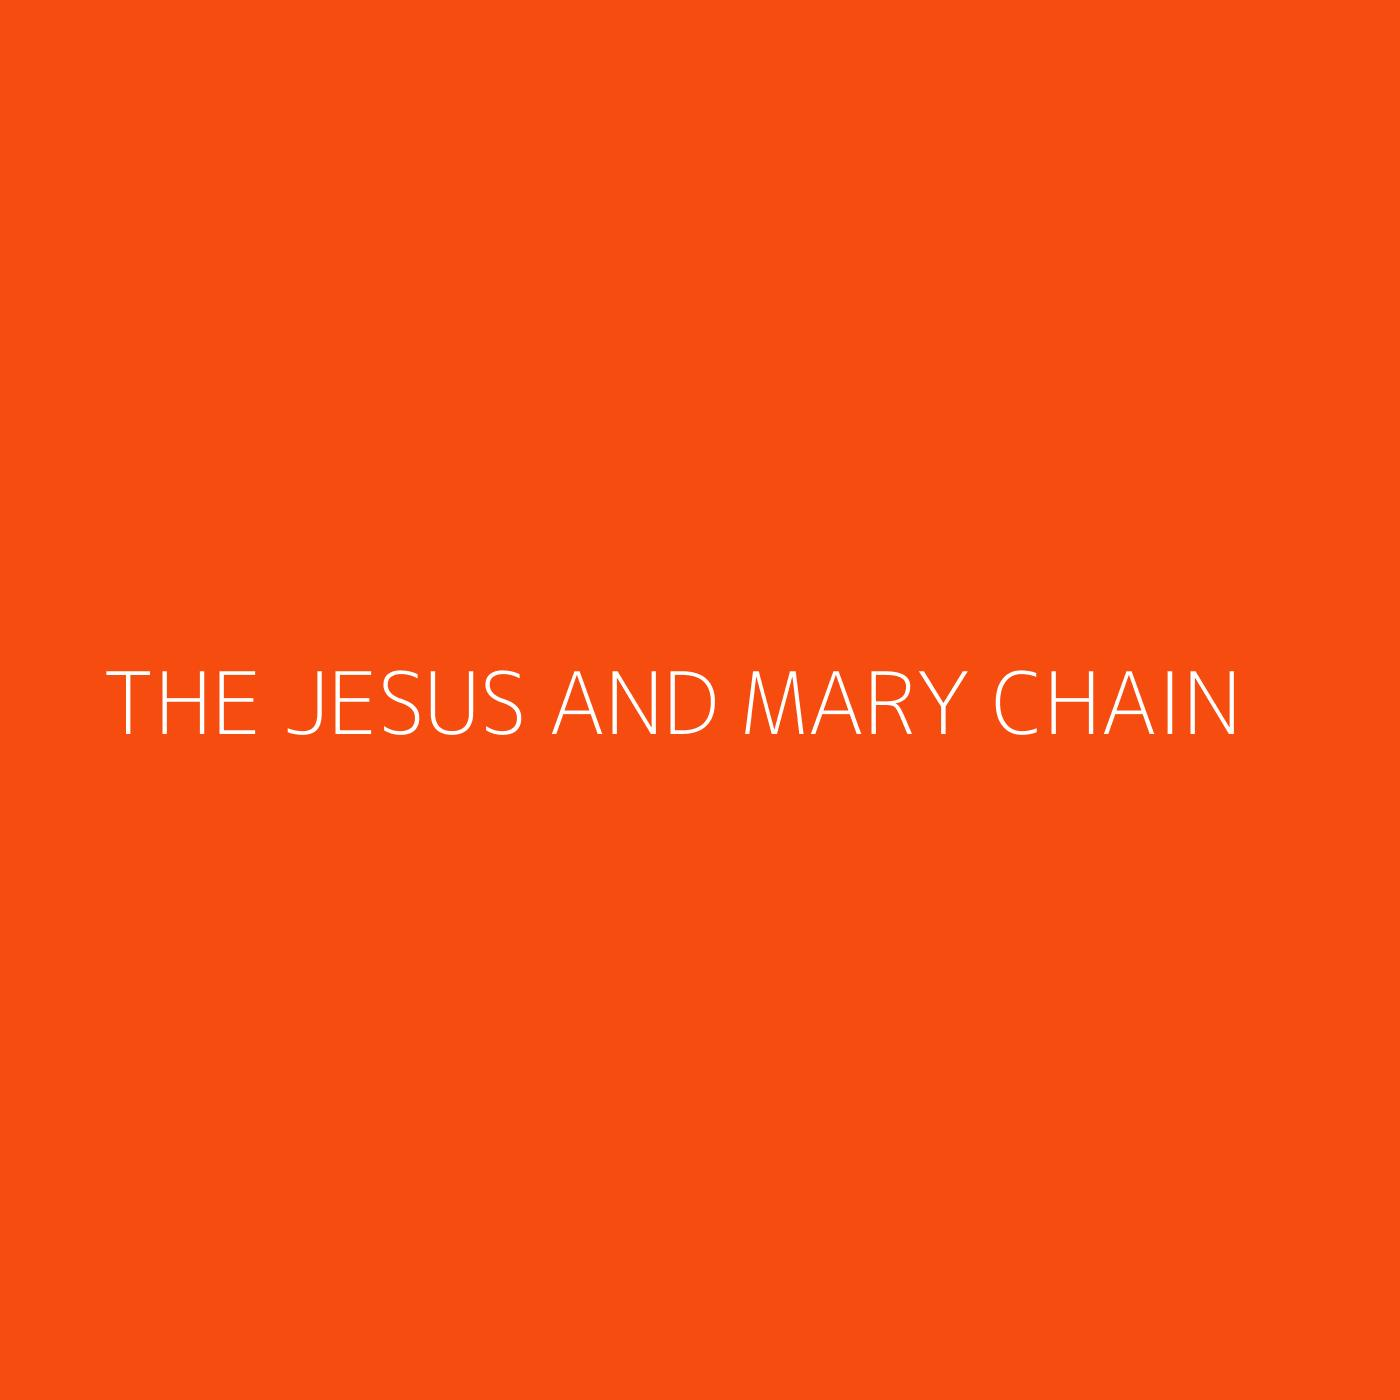 The Jesus and Mary Chain Playlist Artwork